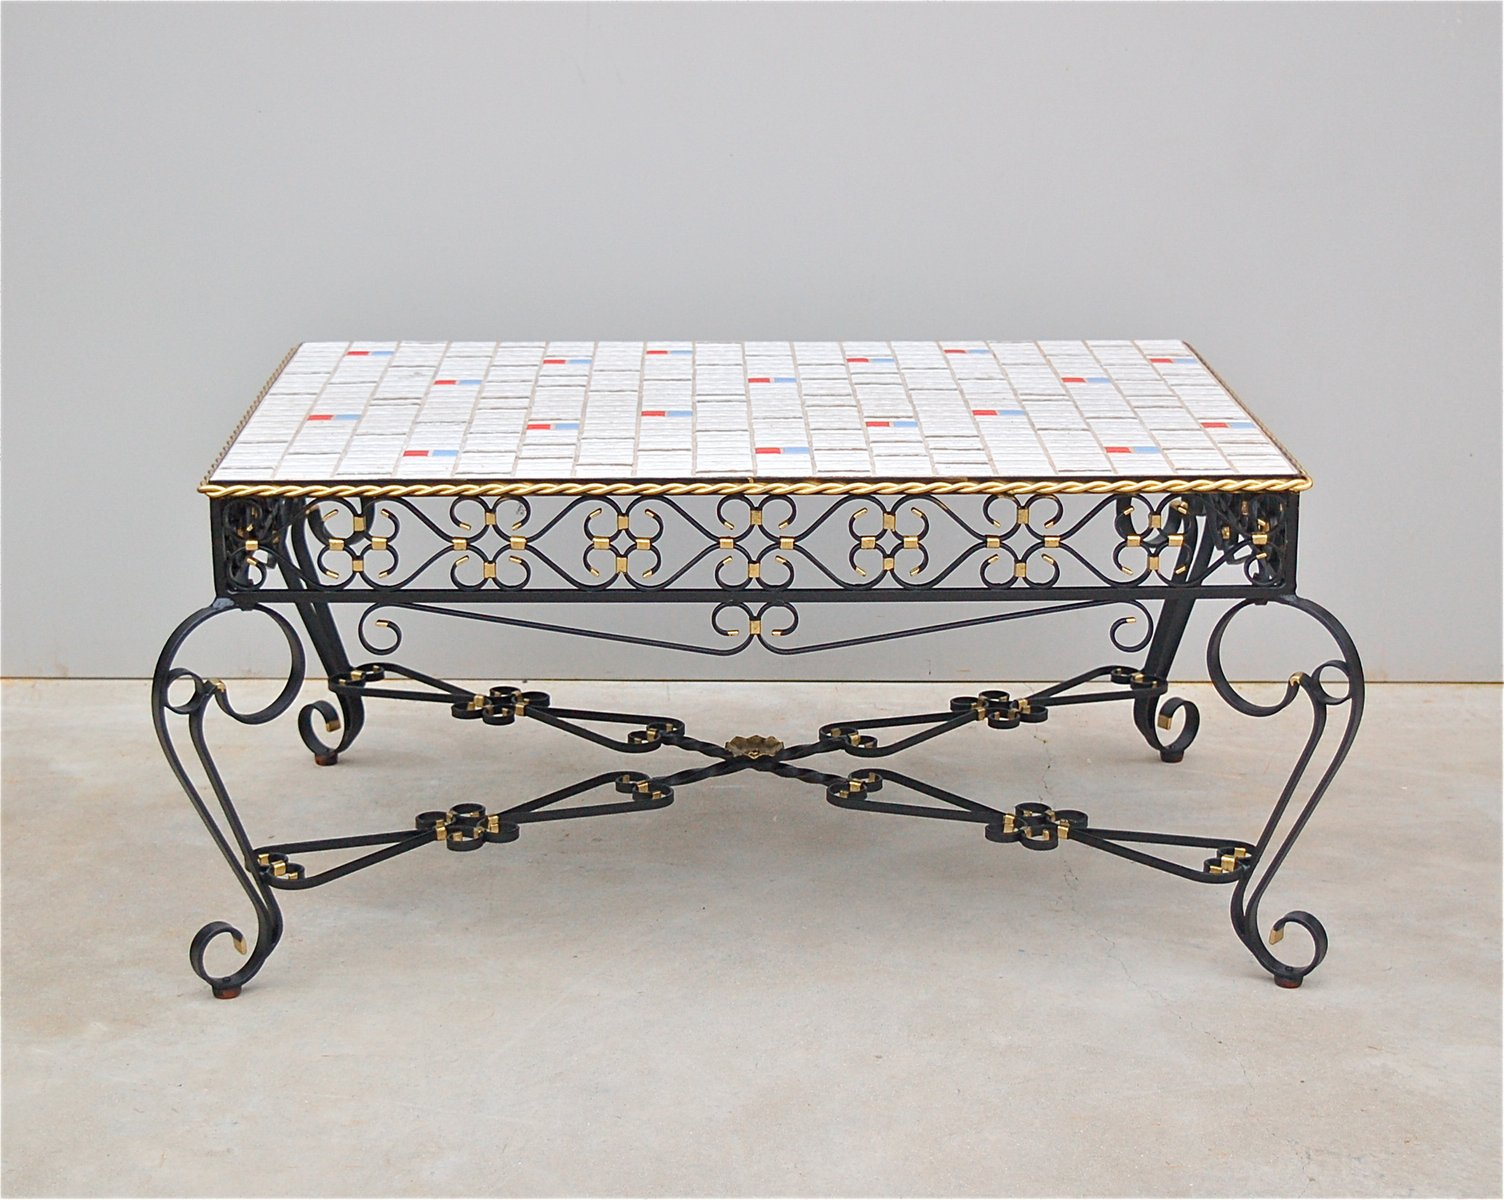 Wrought Metal Ceramic Tile Coffee Table 1971 For Sale At Pamono